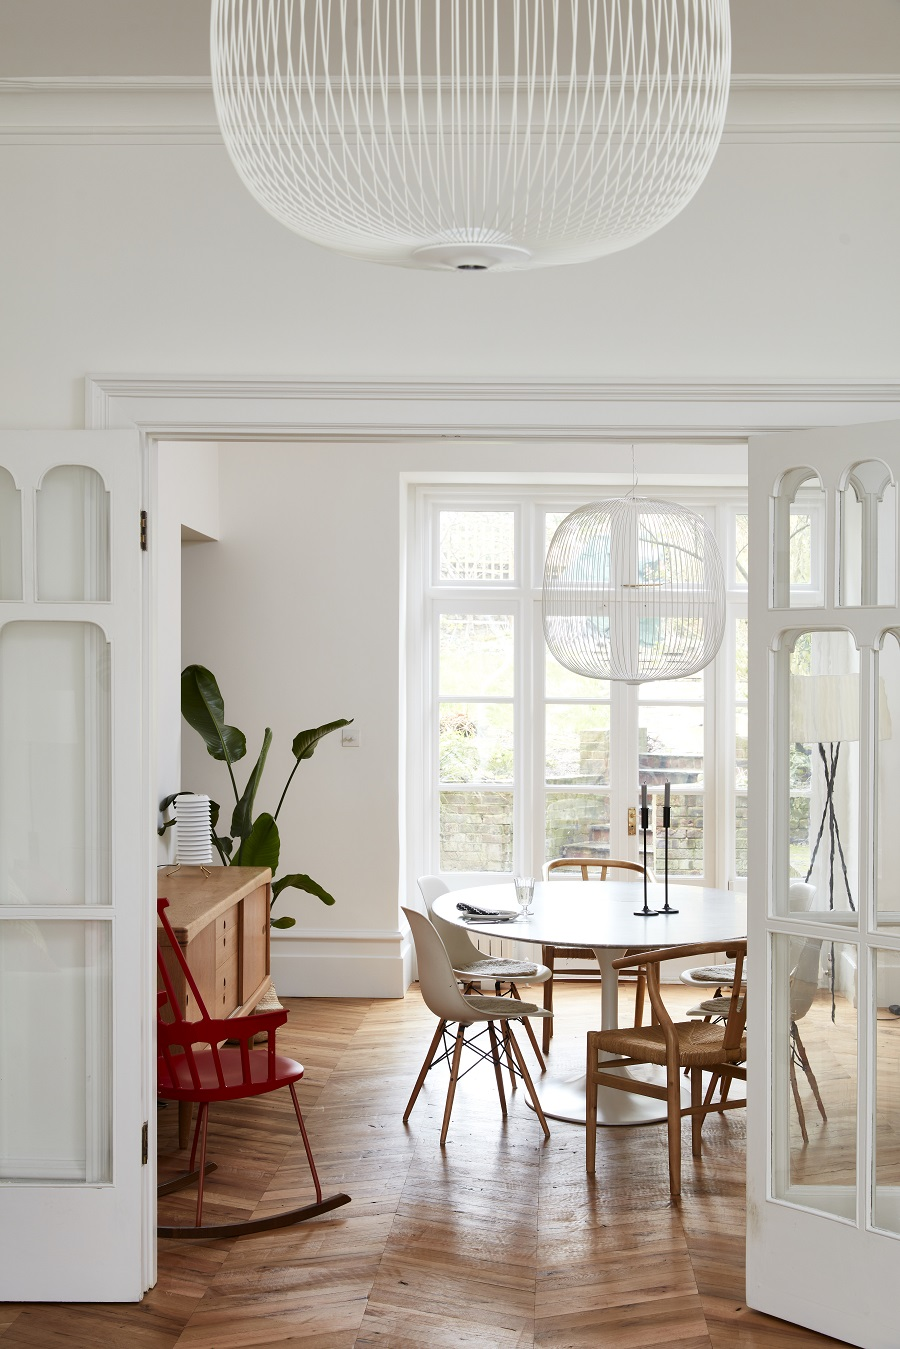 Light and Flow in a North London Family Home